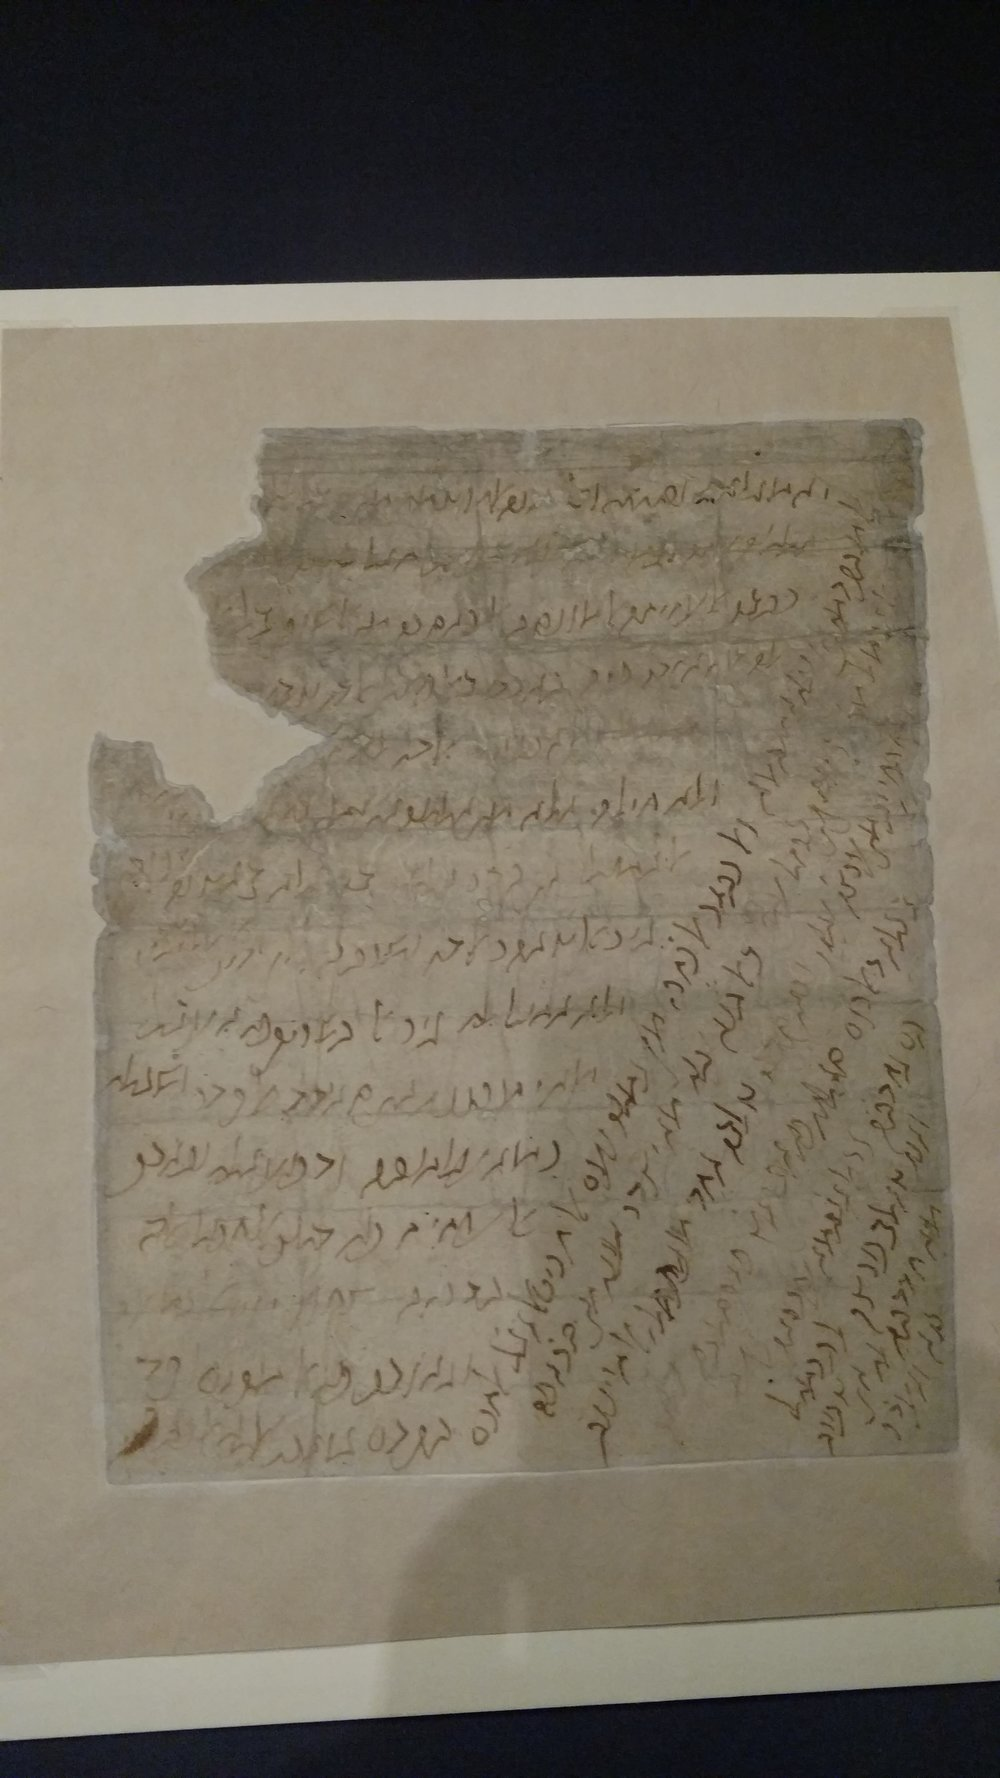 Letter From Judah ha-Levi, 1125, Toledo